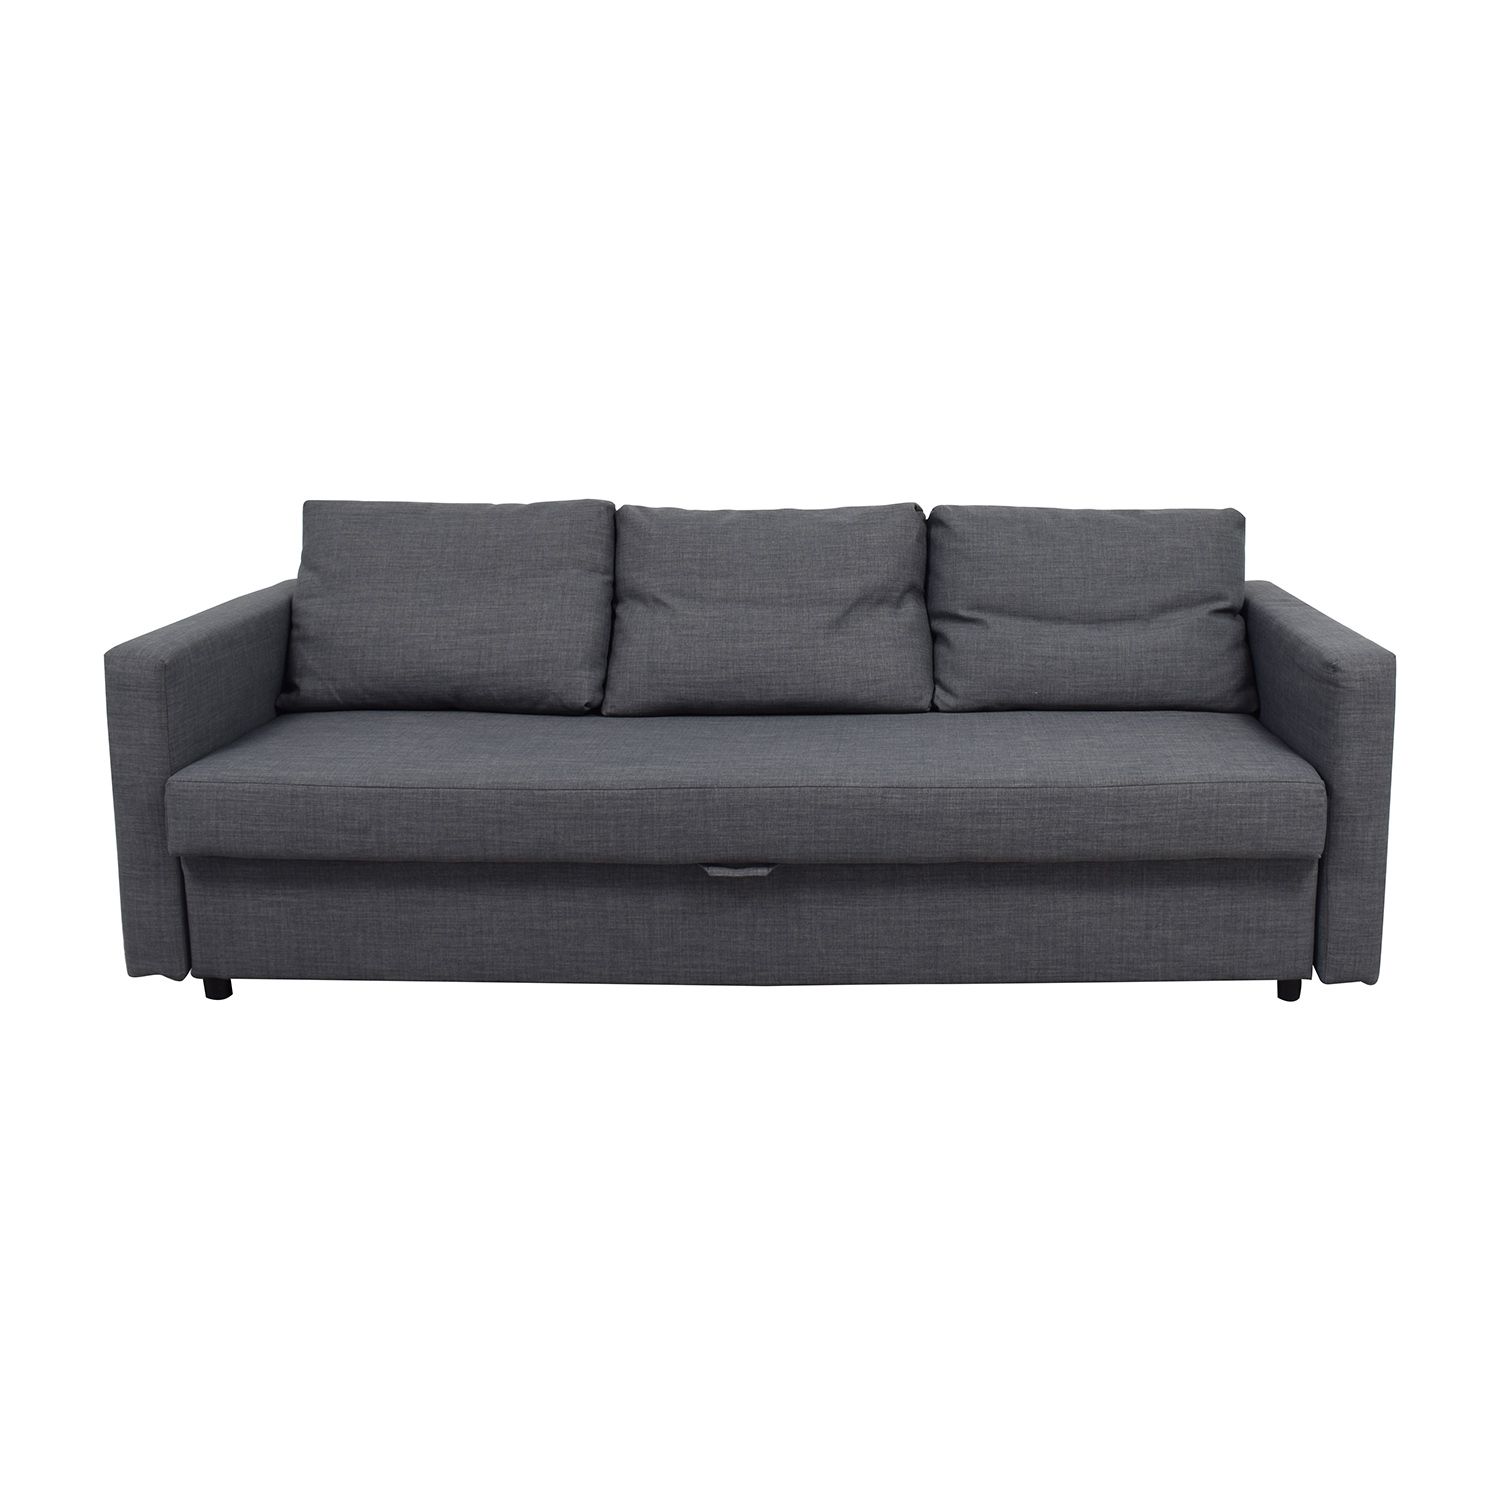 Couch Ikea 32 Off Ikea Ikea Friheten Grey Sleeper Sofa Sofas